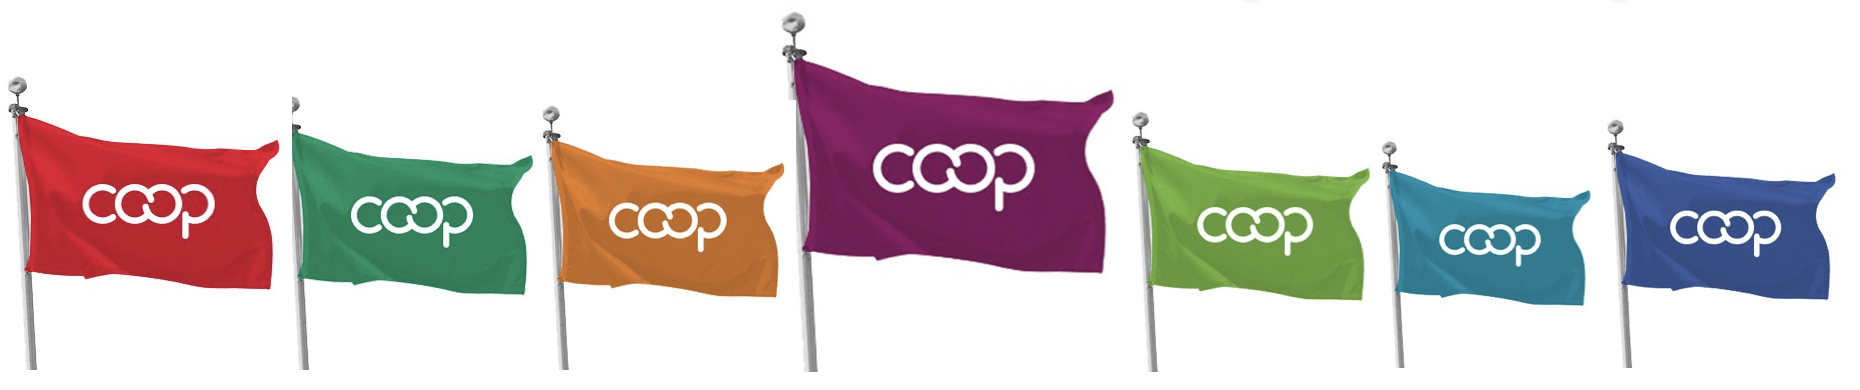 Co-op Flag